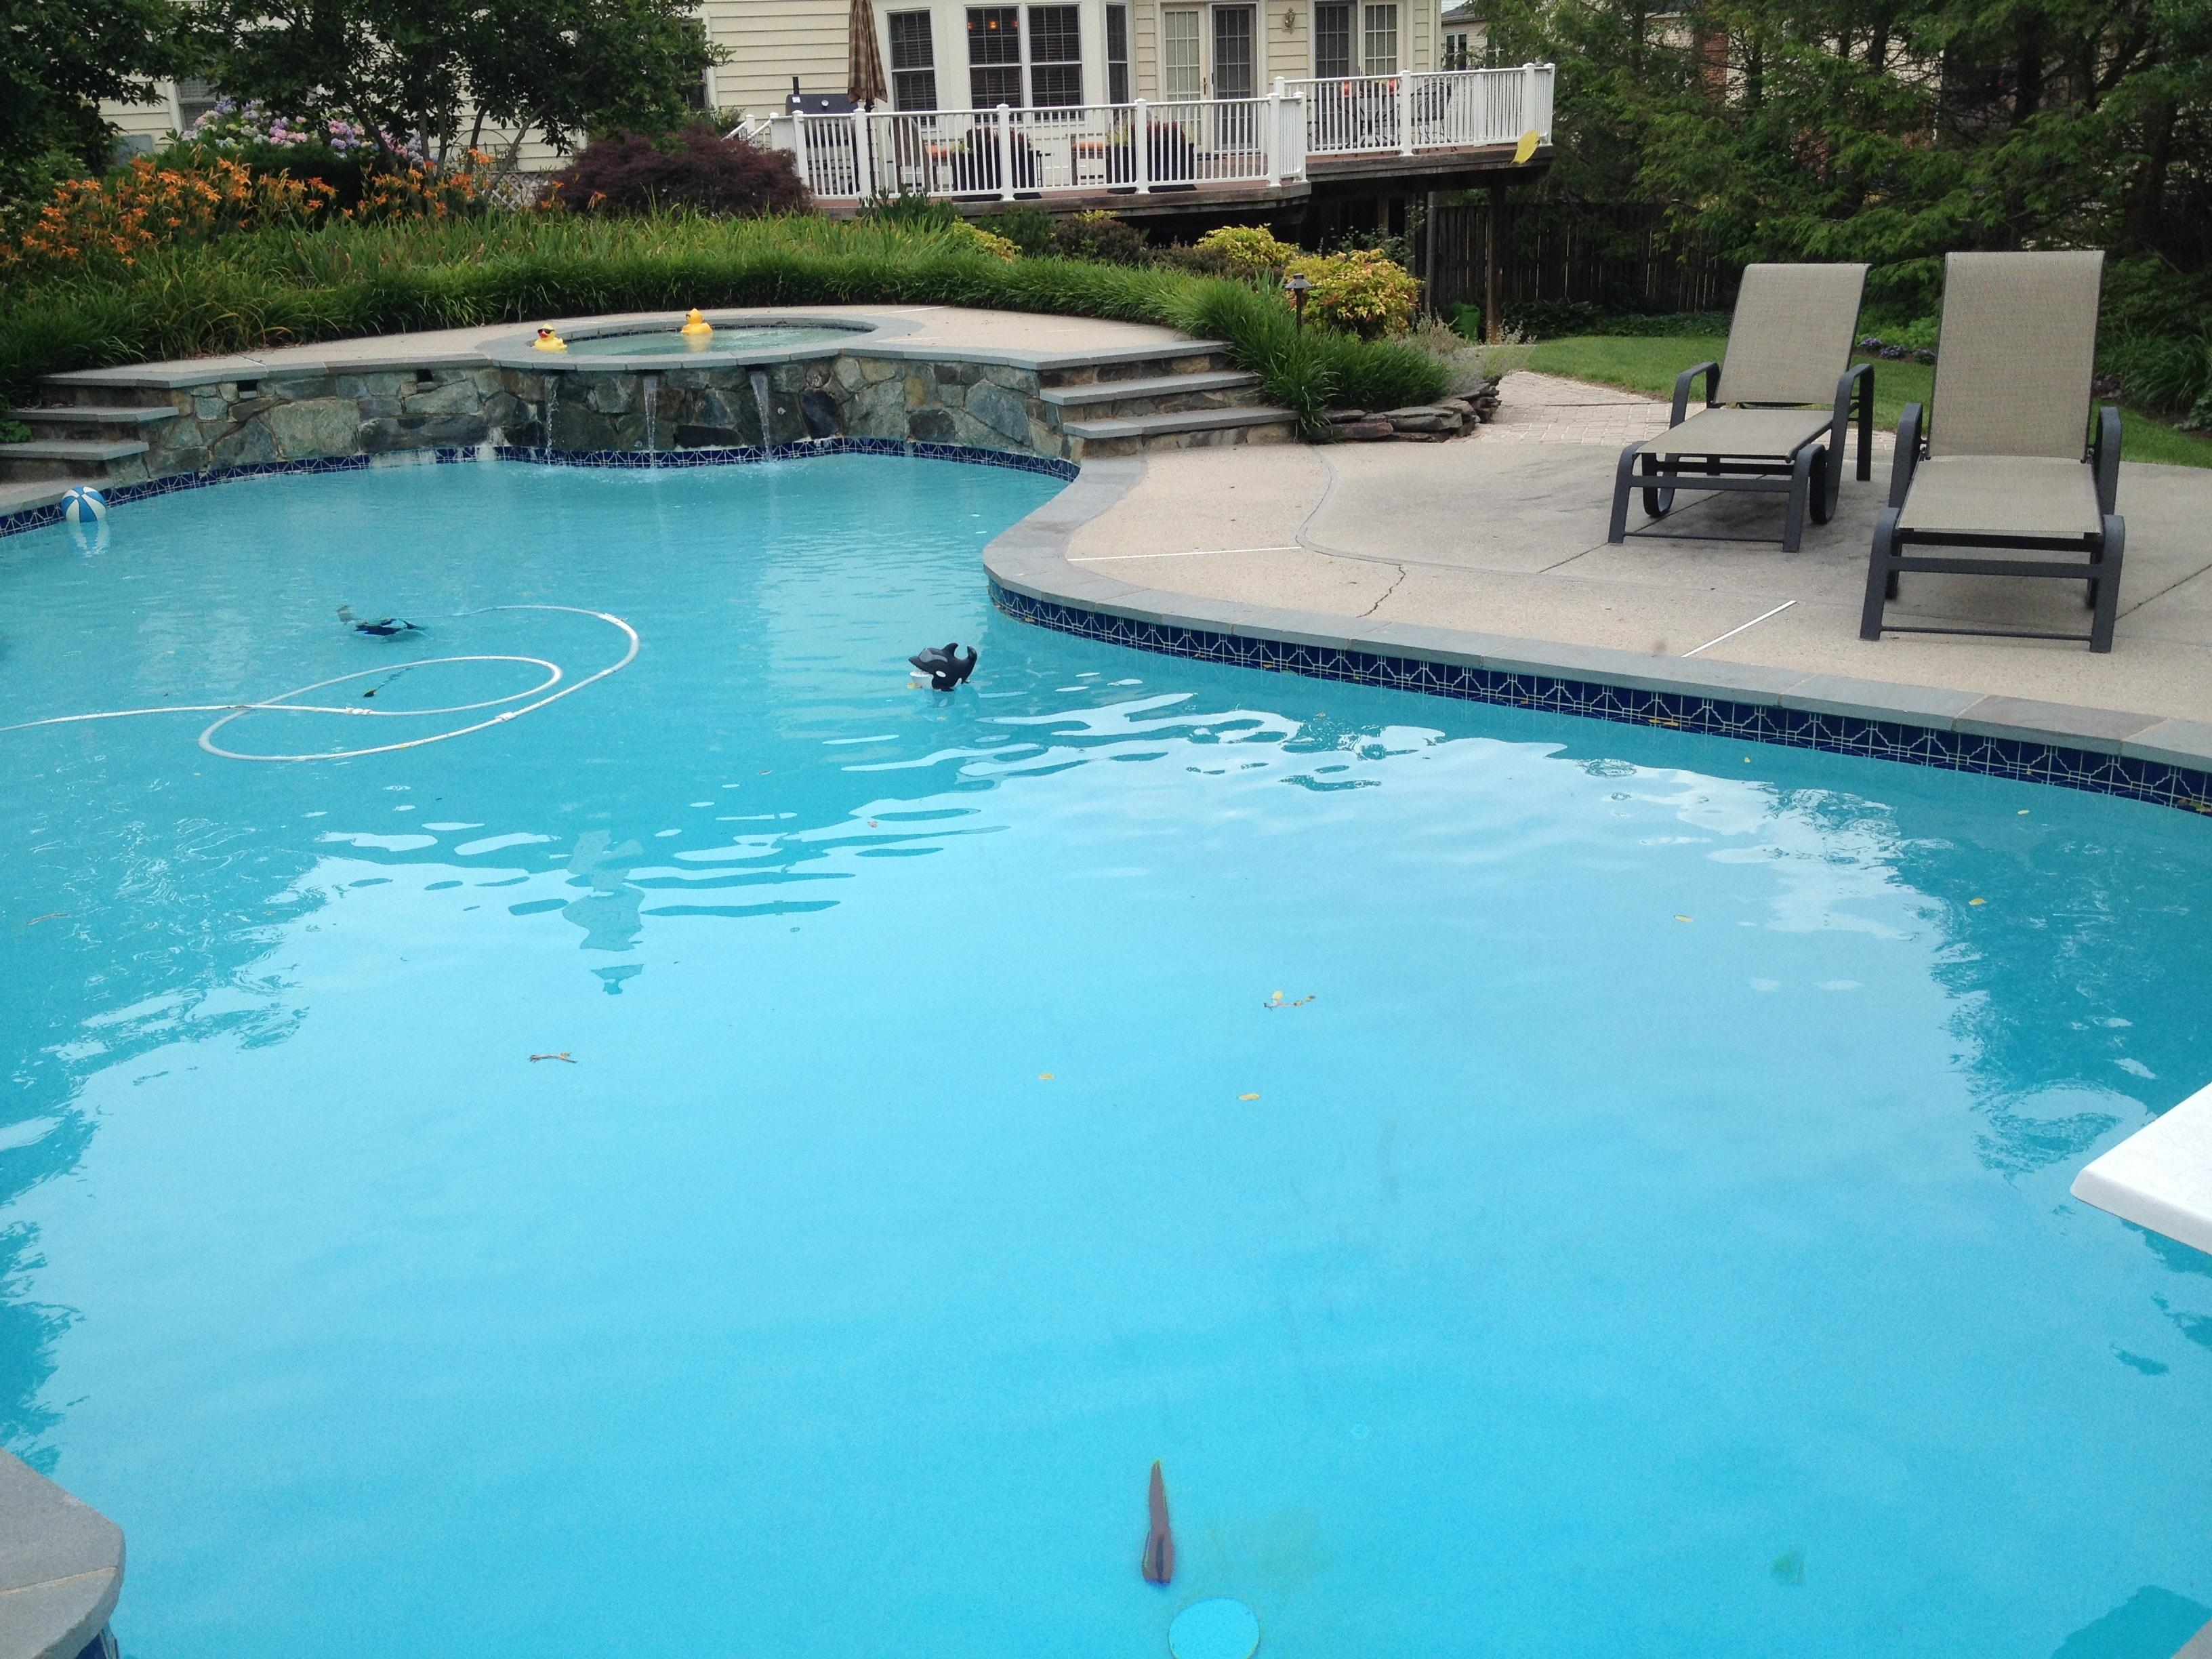 Millennium pool service coupons near me in springfield for Spa services near me